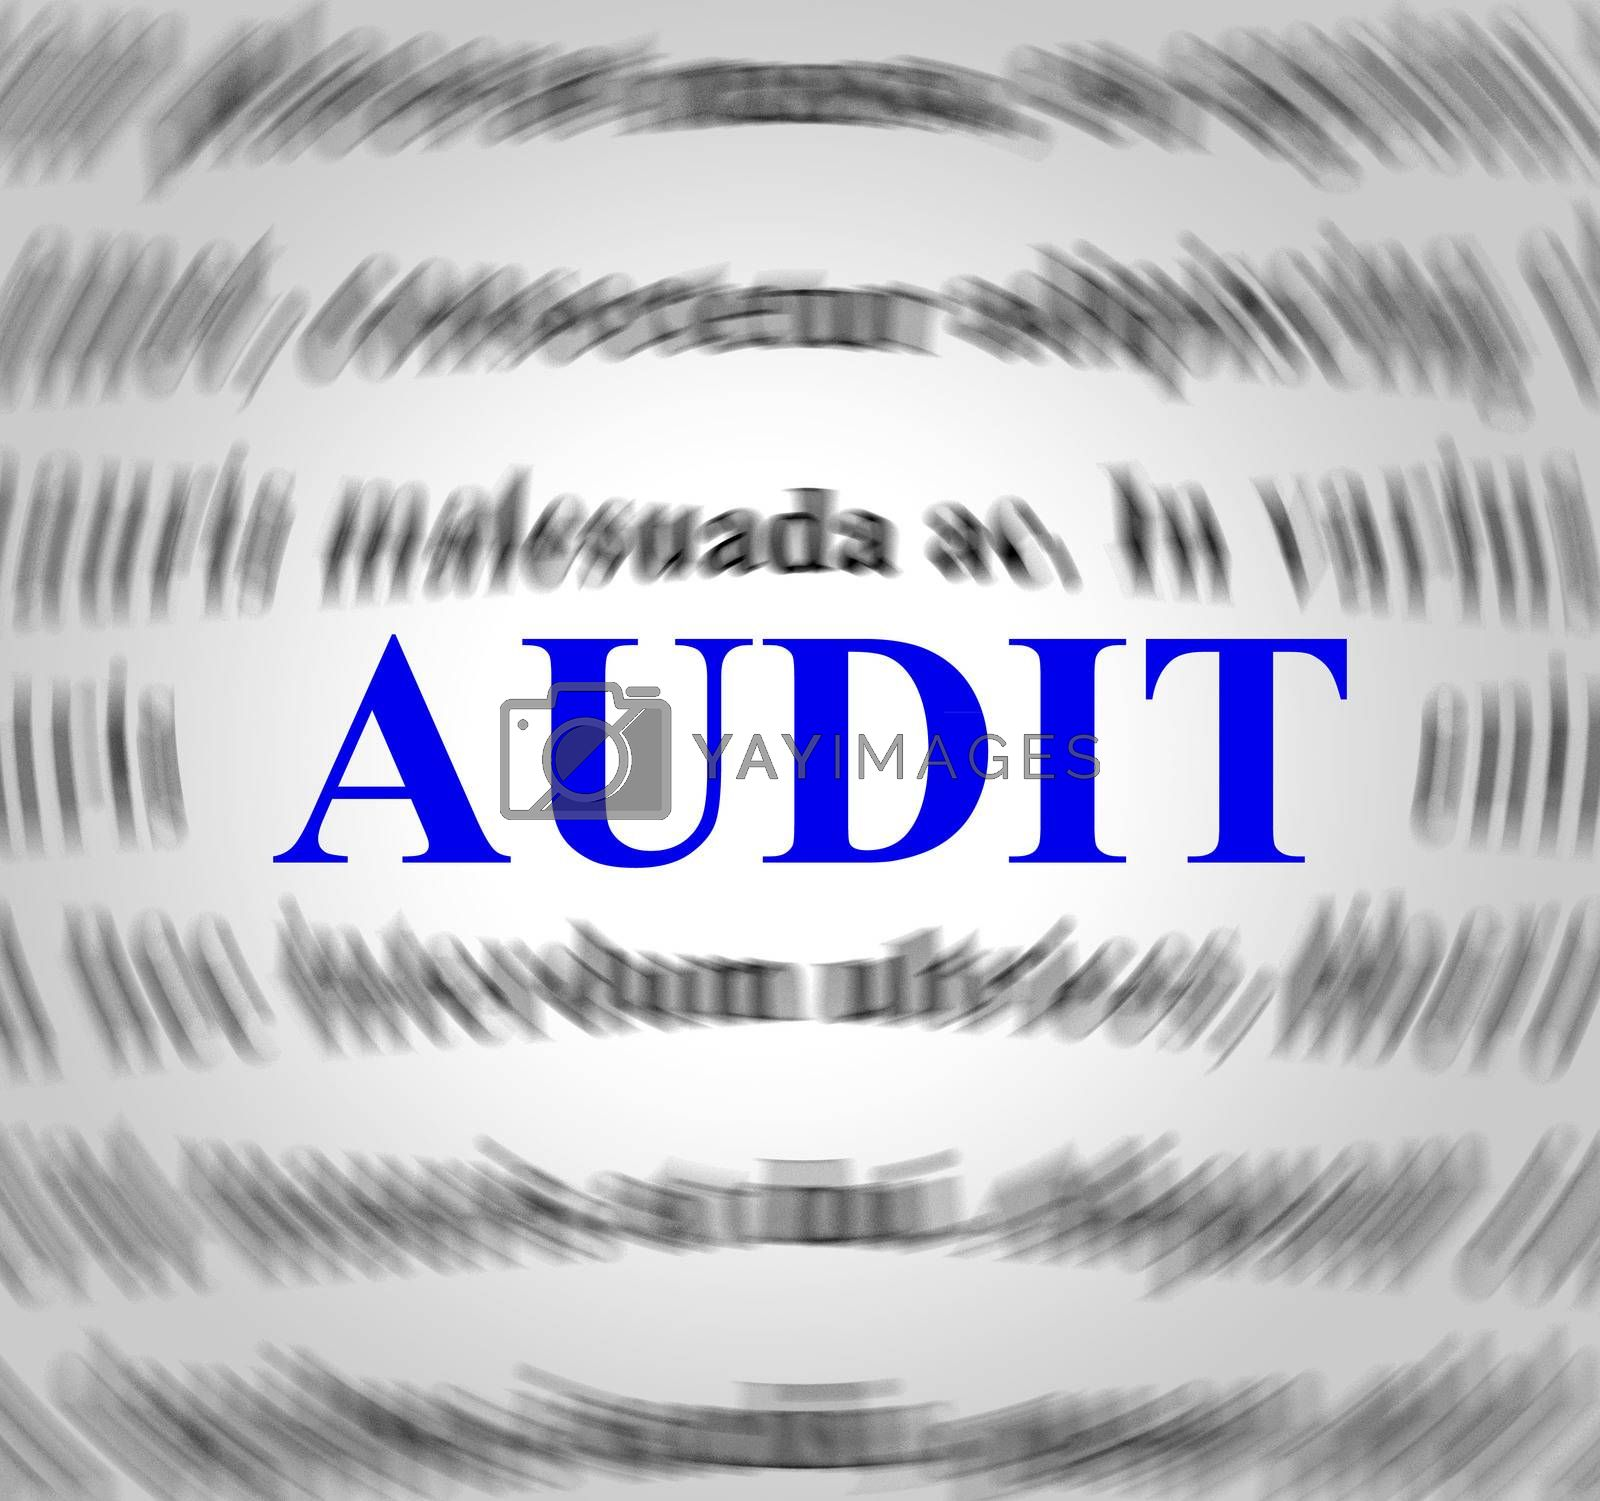 Audit Definition Means Validation Analysis And Inspect by stuartmiles